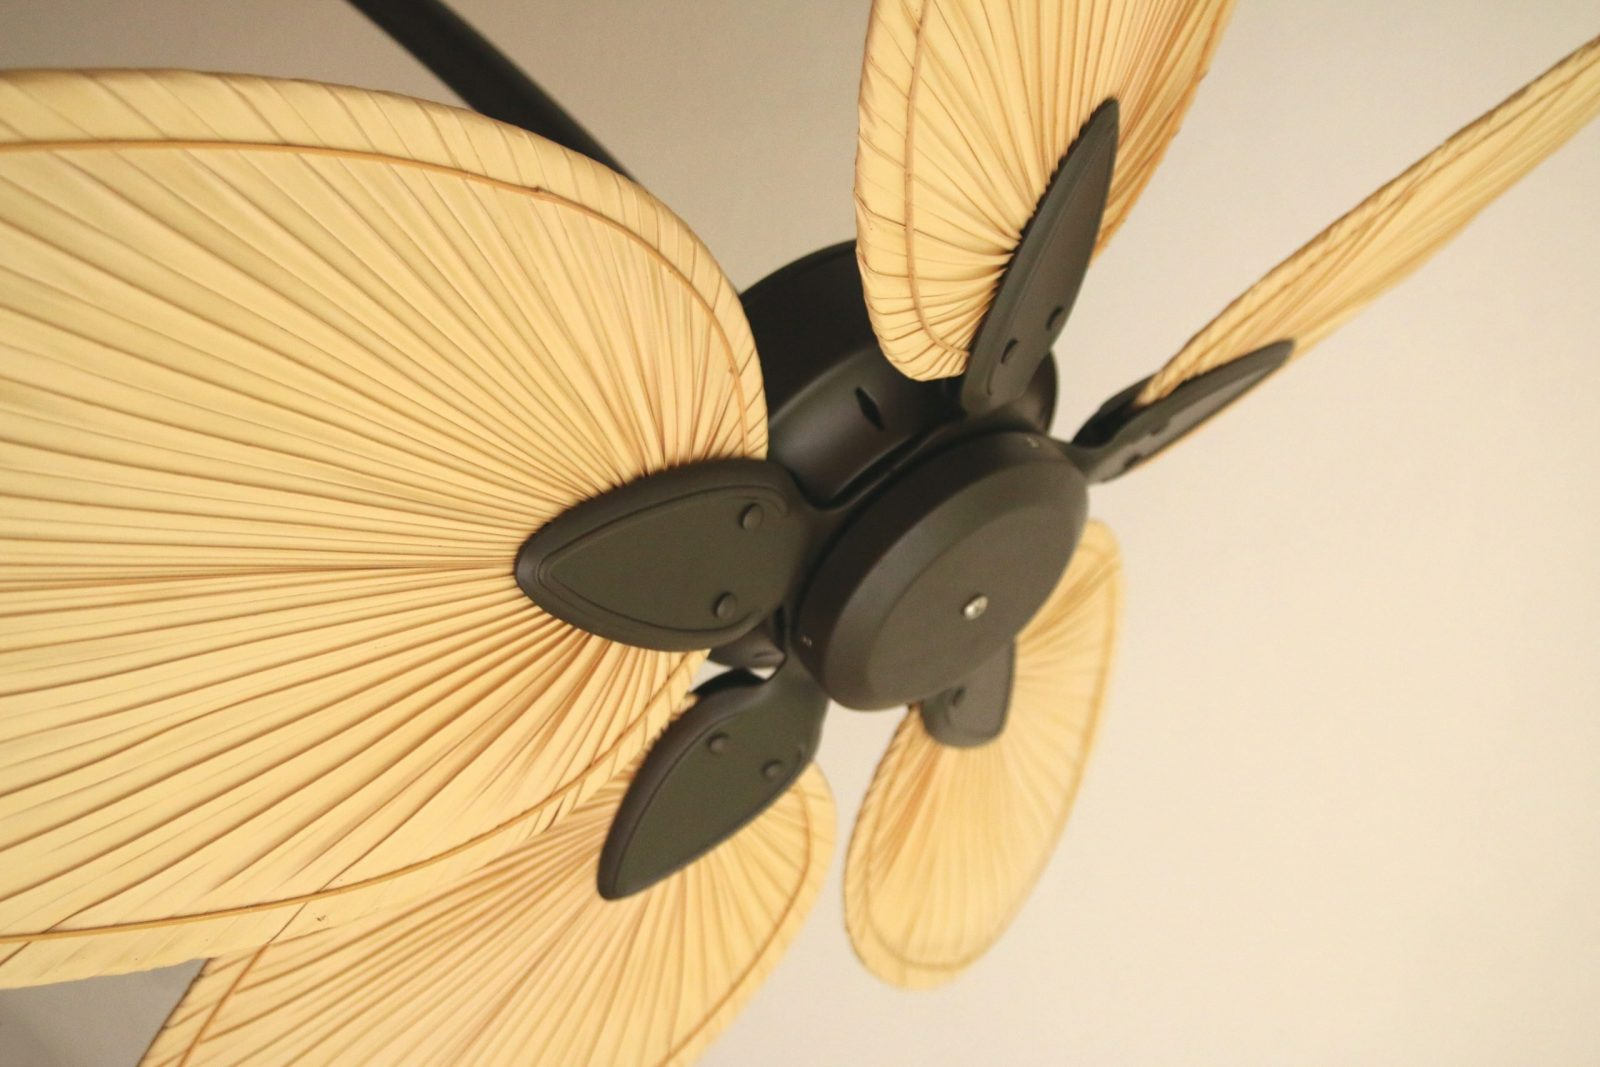 Ceiling Fans hanging from ceiling. Fan looks like palm fronds in a tropical style.